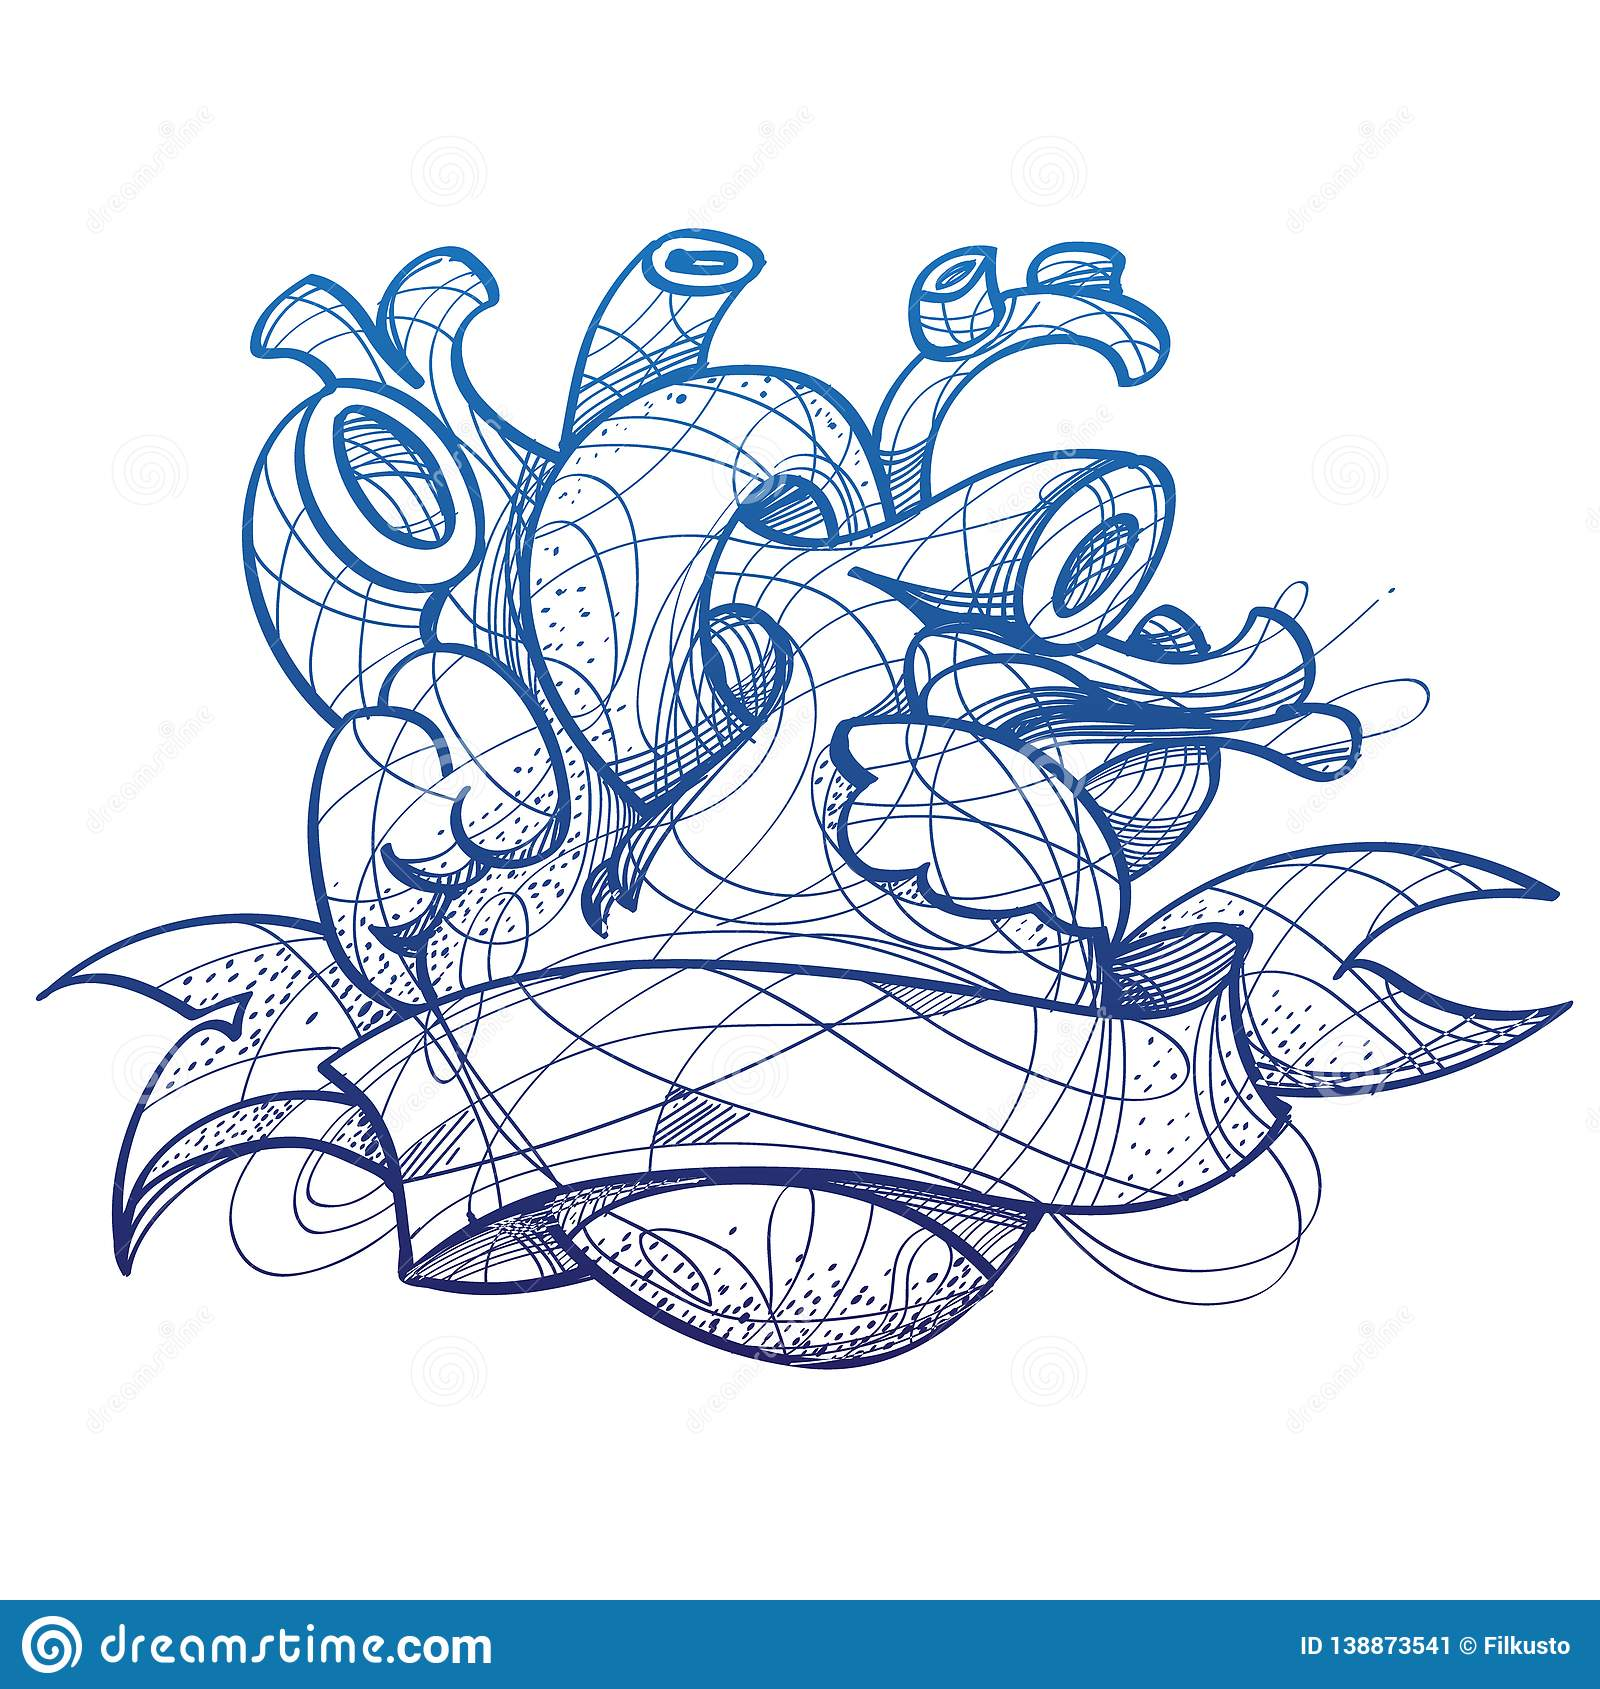 Heart Tattoo Sketch Hand Drawing Style Picture For Coloring Stock Vector Illustration Of Banner Illustration 138873541